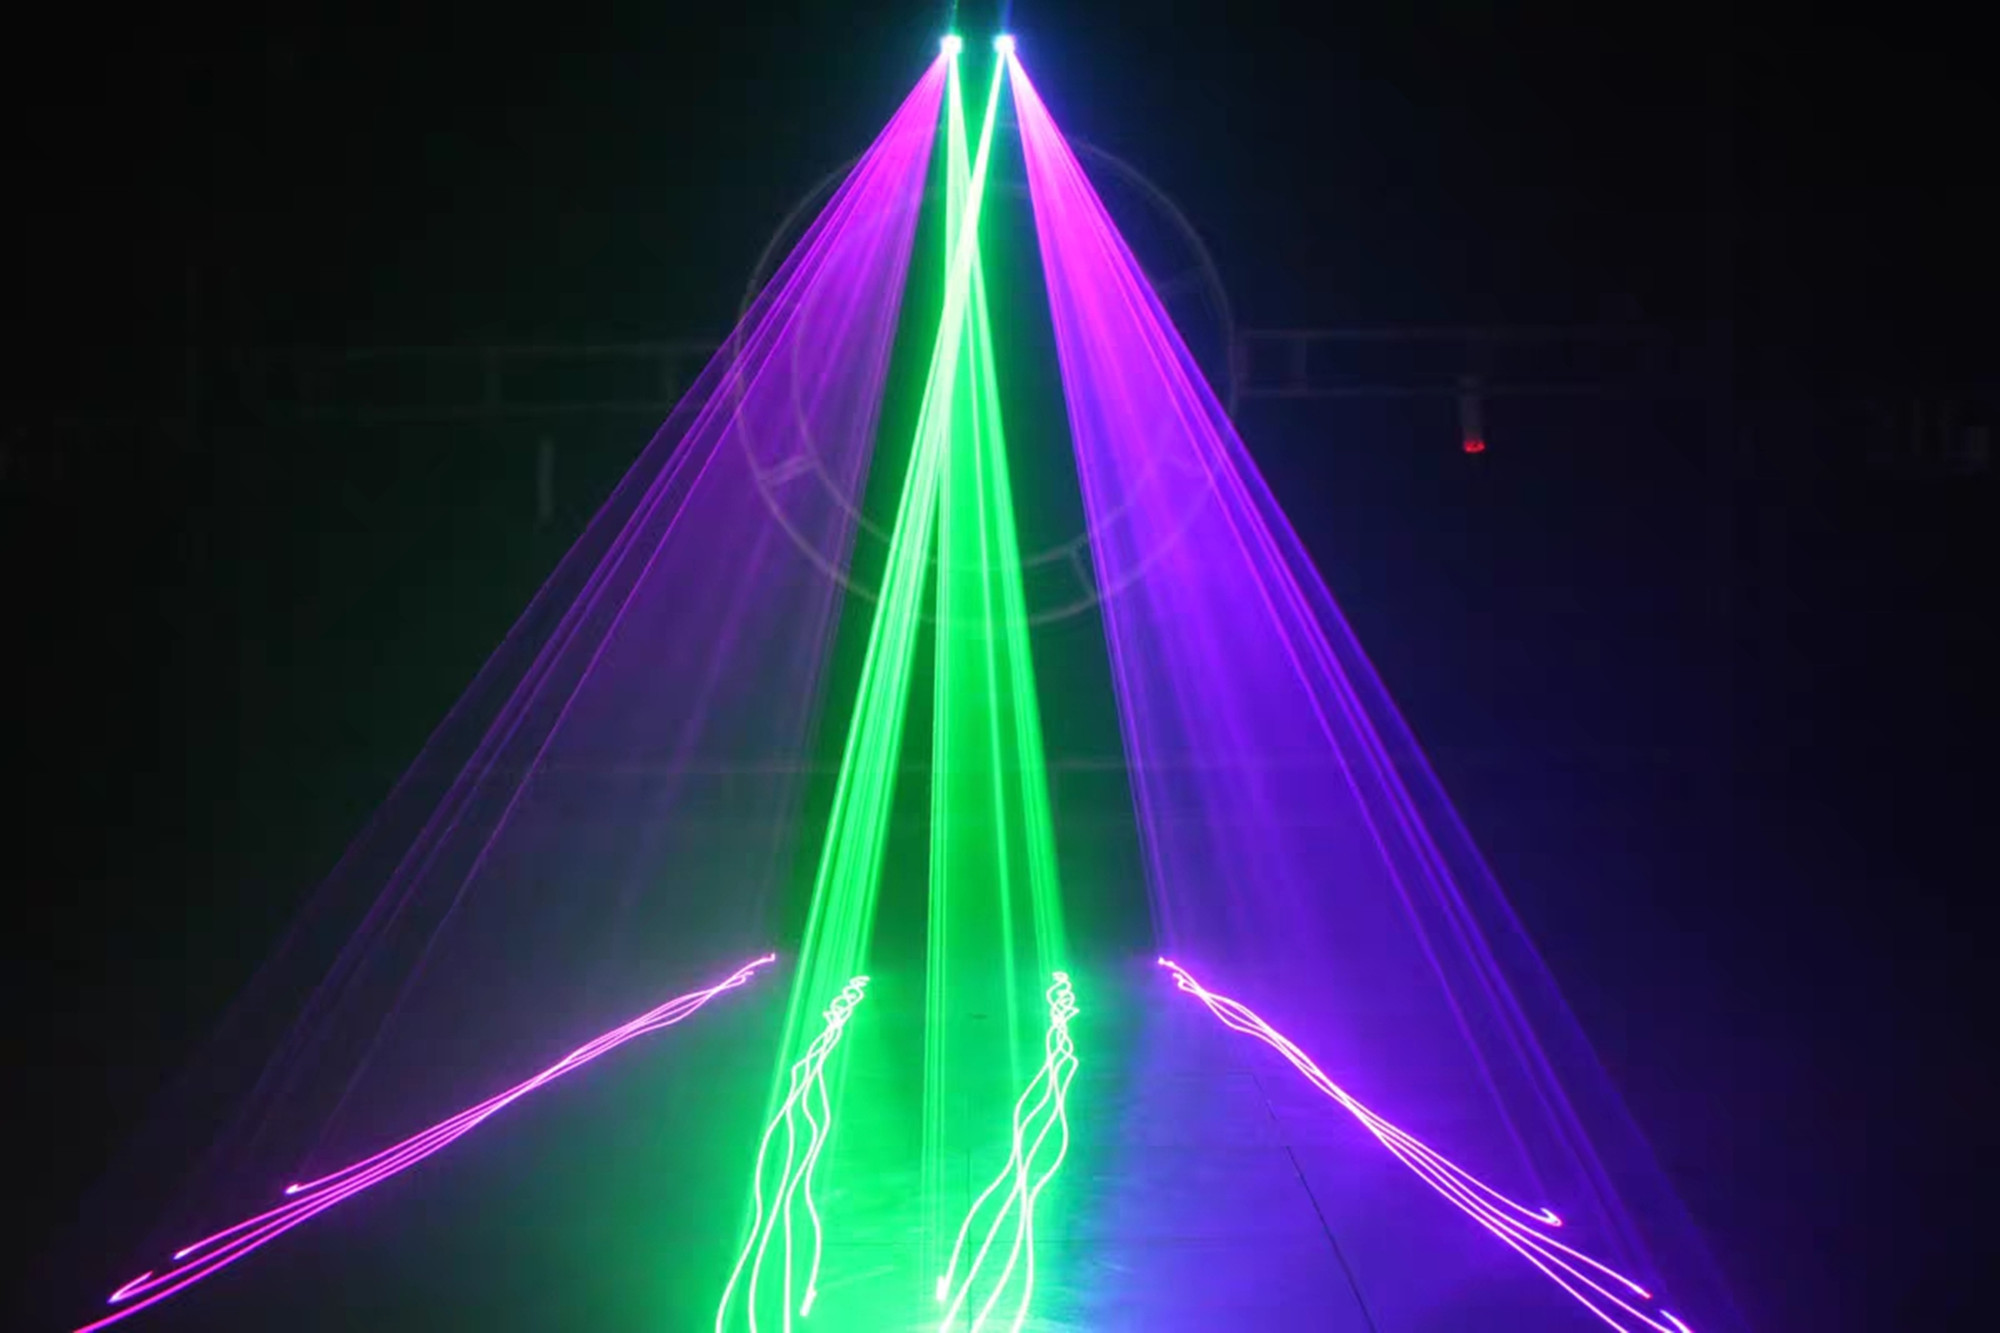 H7afff8f660c8416d8766b05c88c621f90 - Hot sales 2 Lens Red Green Blue RGB Beam Laser Light DMX 512 Professional DJ Party Show Club Holiday Home Bar Stage Lighting